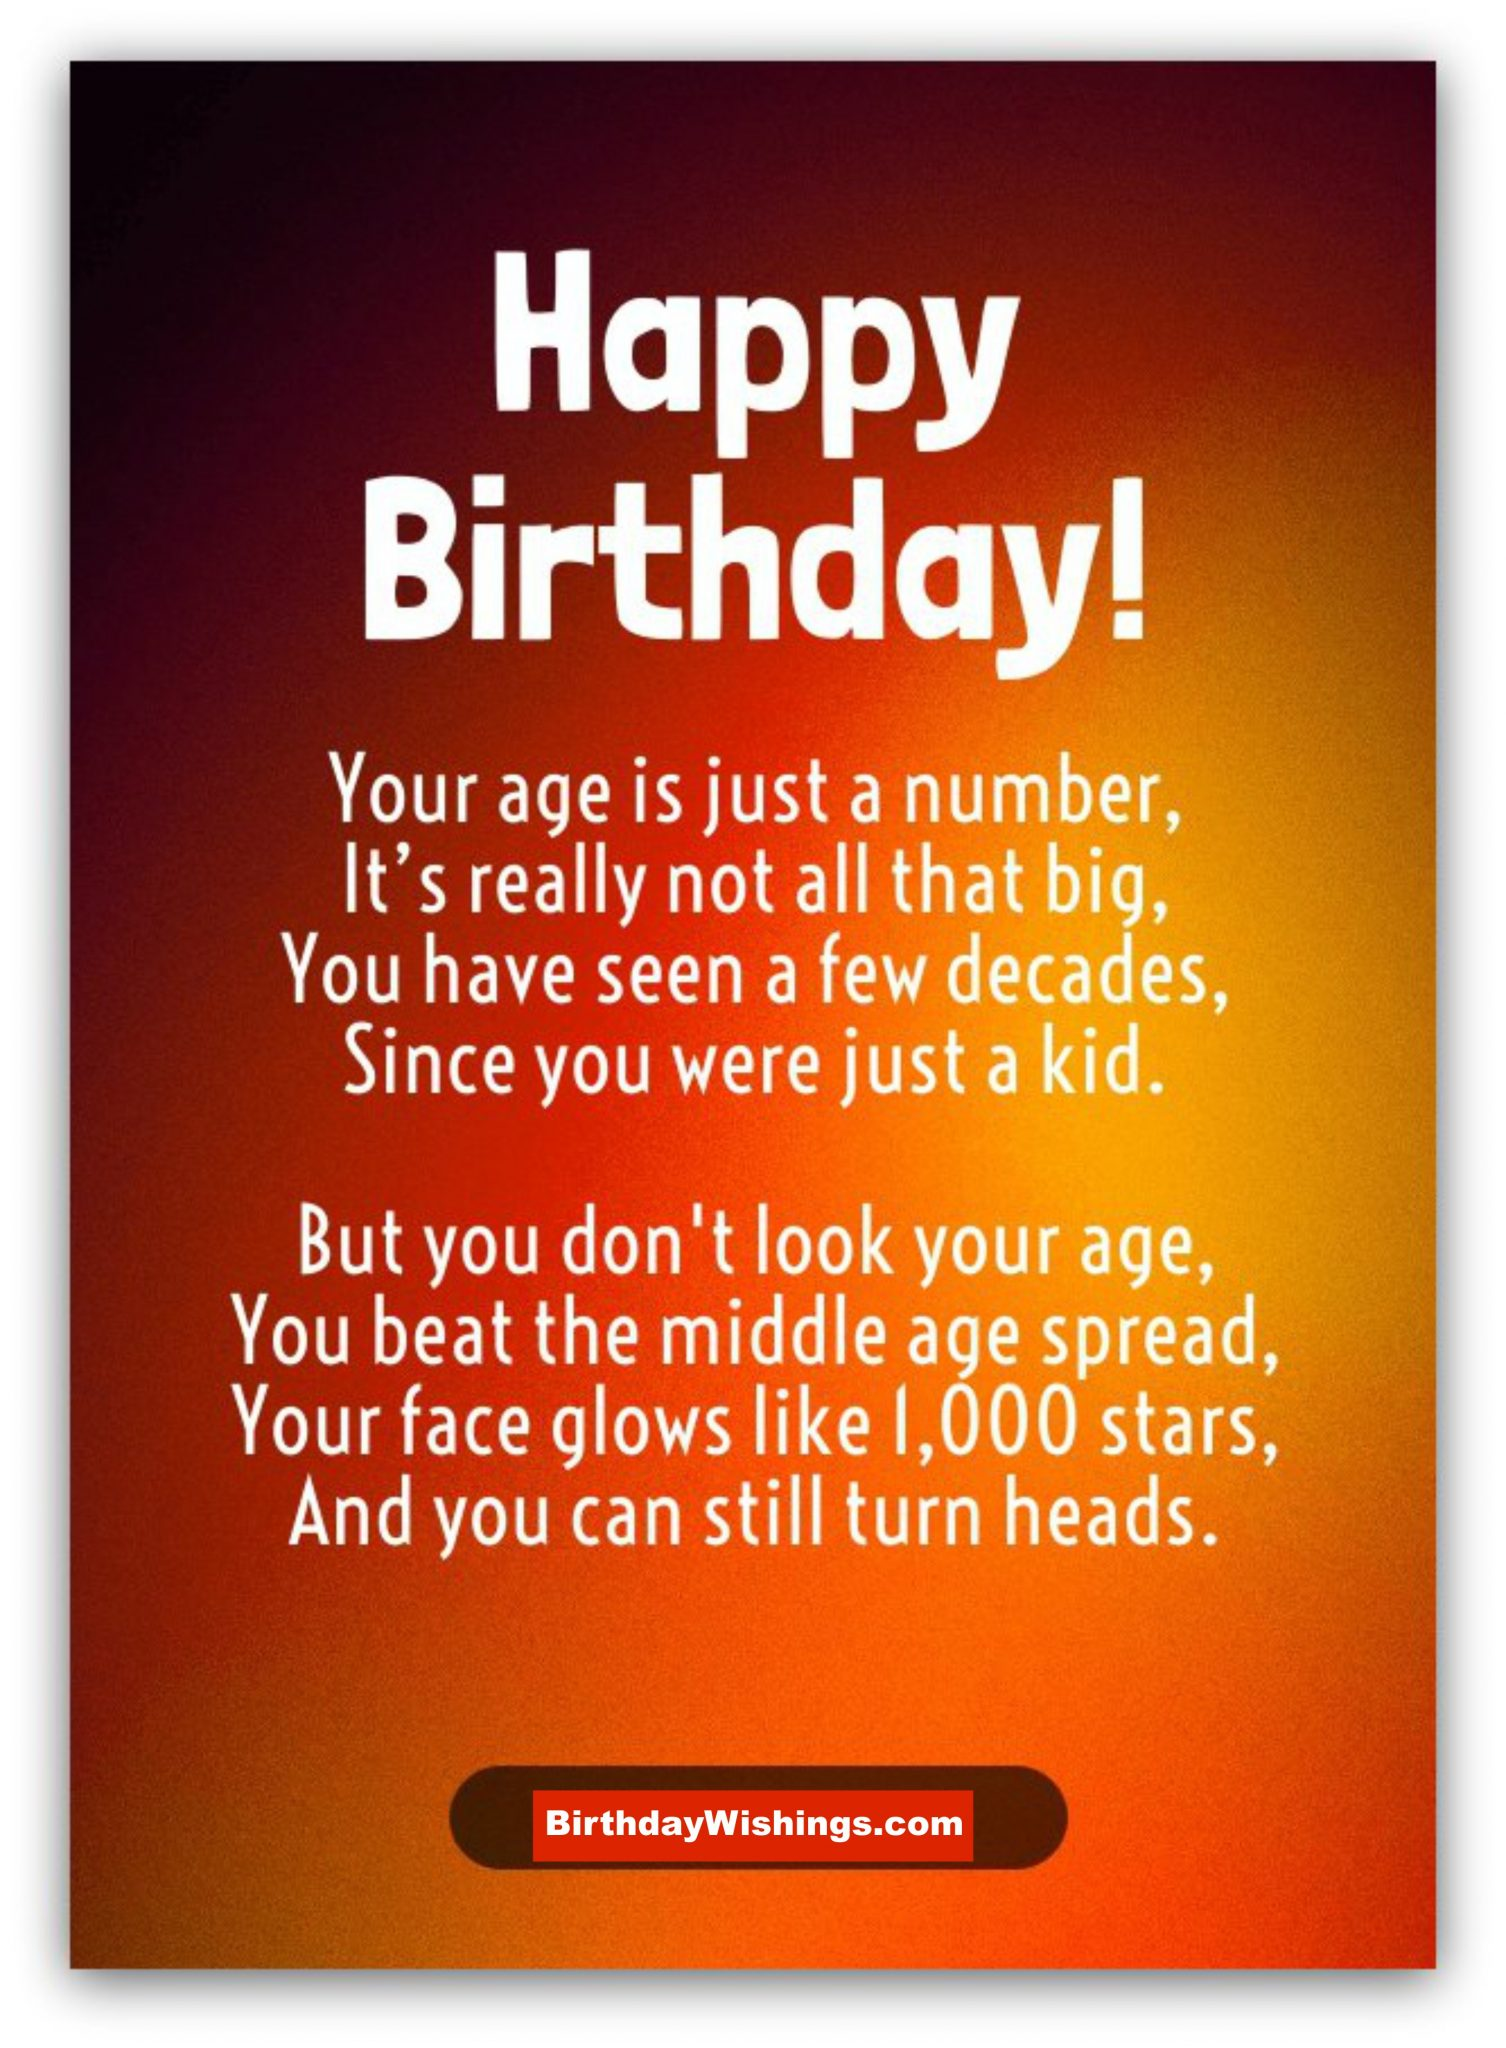 Special Birthday Poem - BirthdayWishings.com